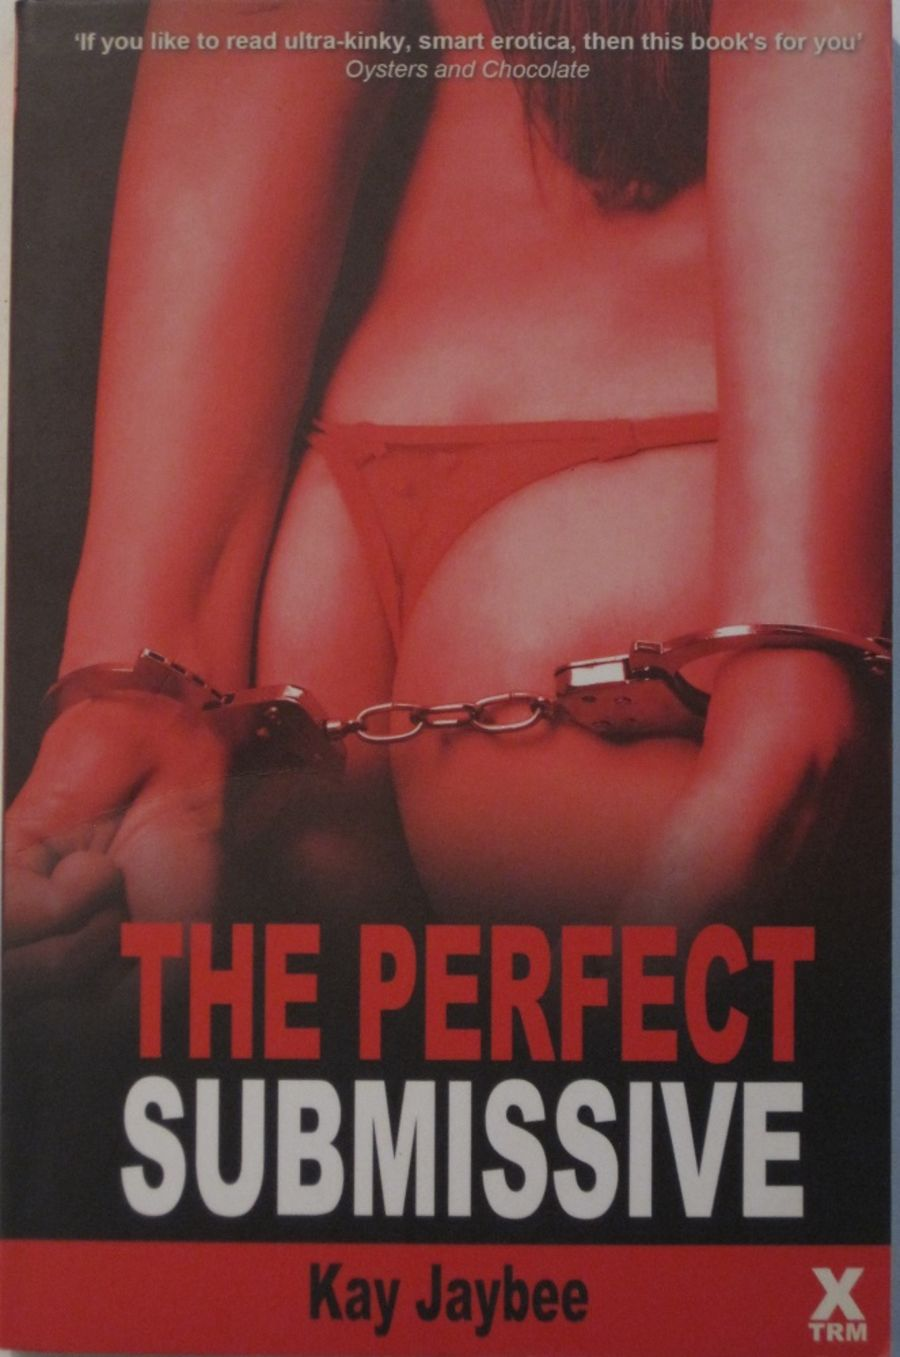 THE PERFECT SUBMISSIVE.  2012 EROTIC FICTION PAPERBACK BOOK.